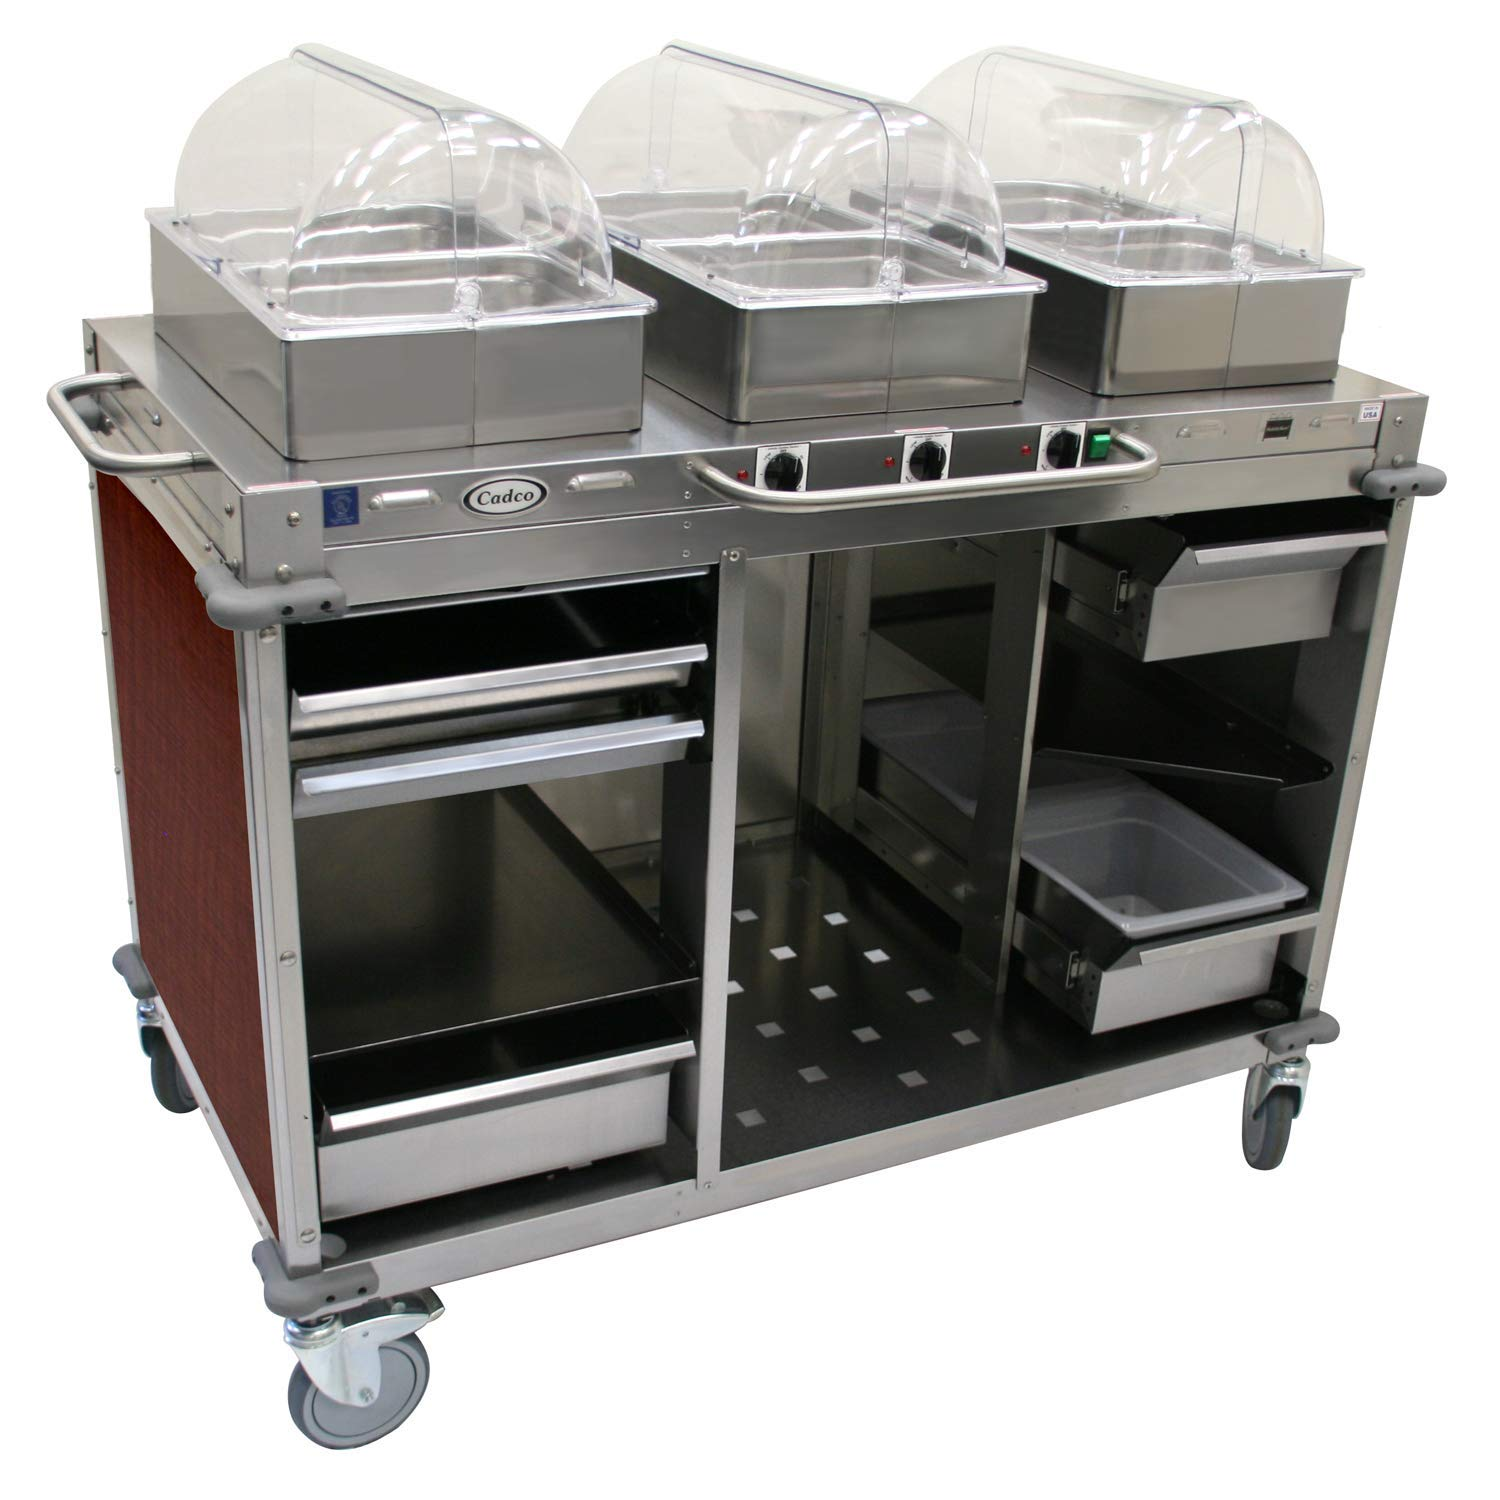 "Mobile Hot Buffet Cart Color: Versailles Cherry, Size: 51"" H x 55.5"" W x 28.75"" D"